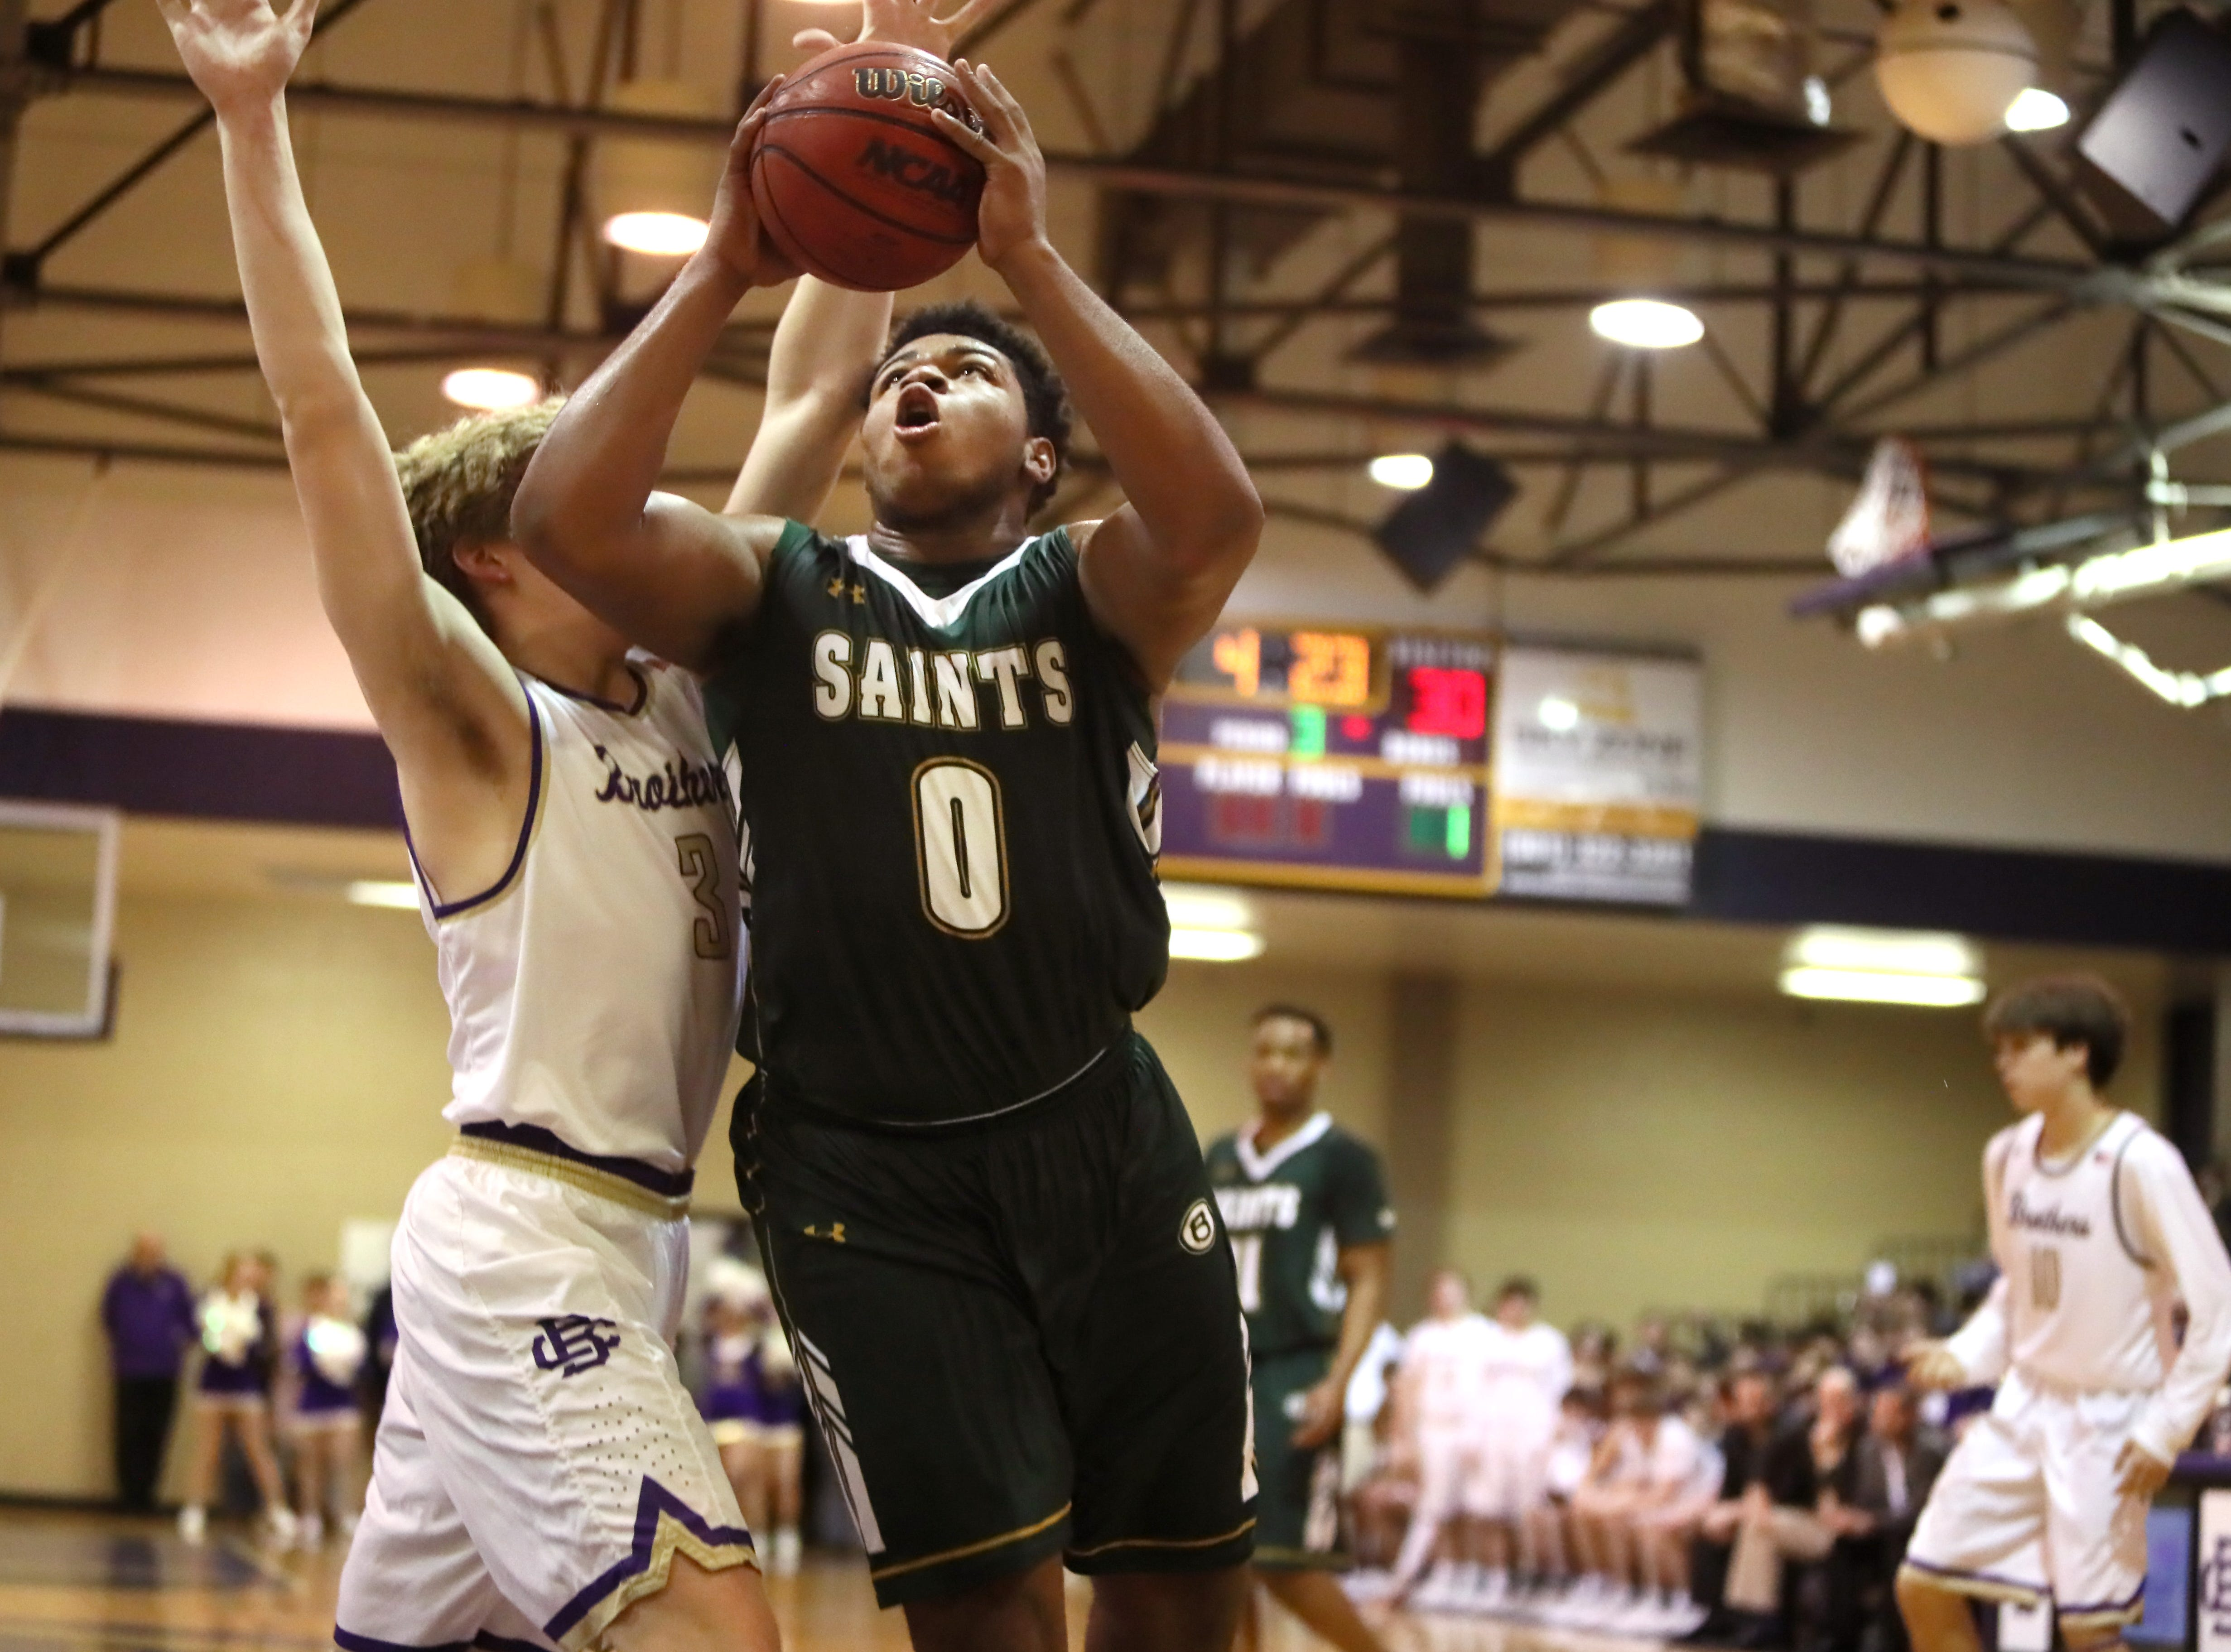 Briarcrest's Omari Thomas drives past Christian Brothers' Clint Channell during their game at Christian Brothers High School on Friday, Jan. 11, 2019.